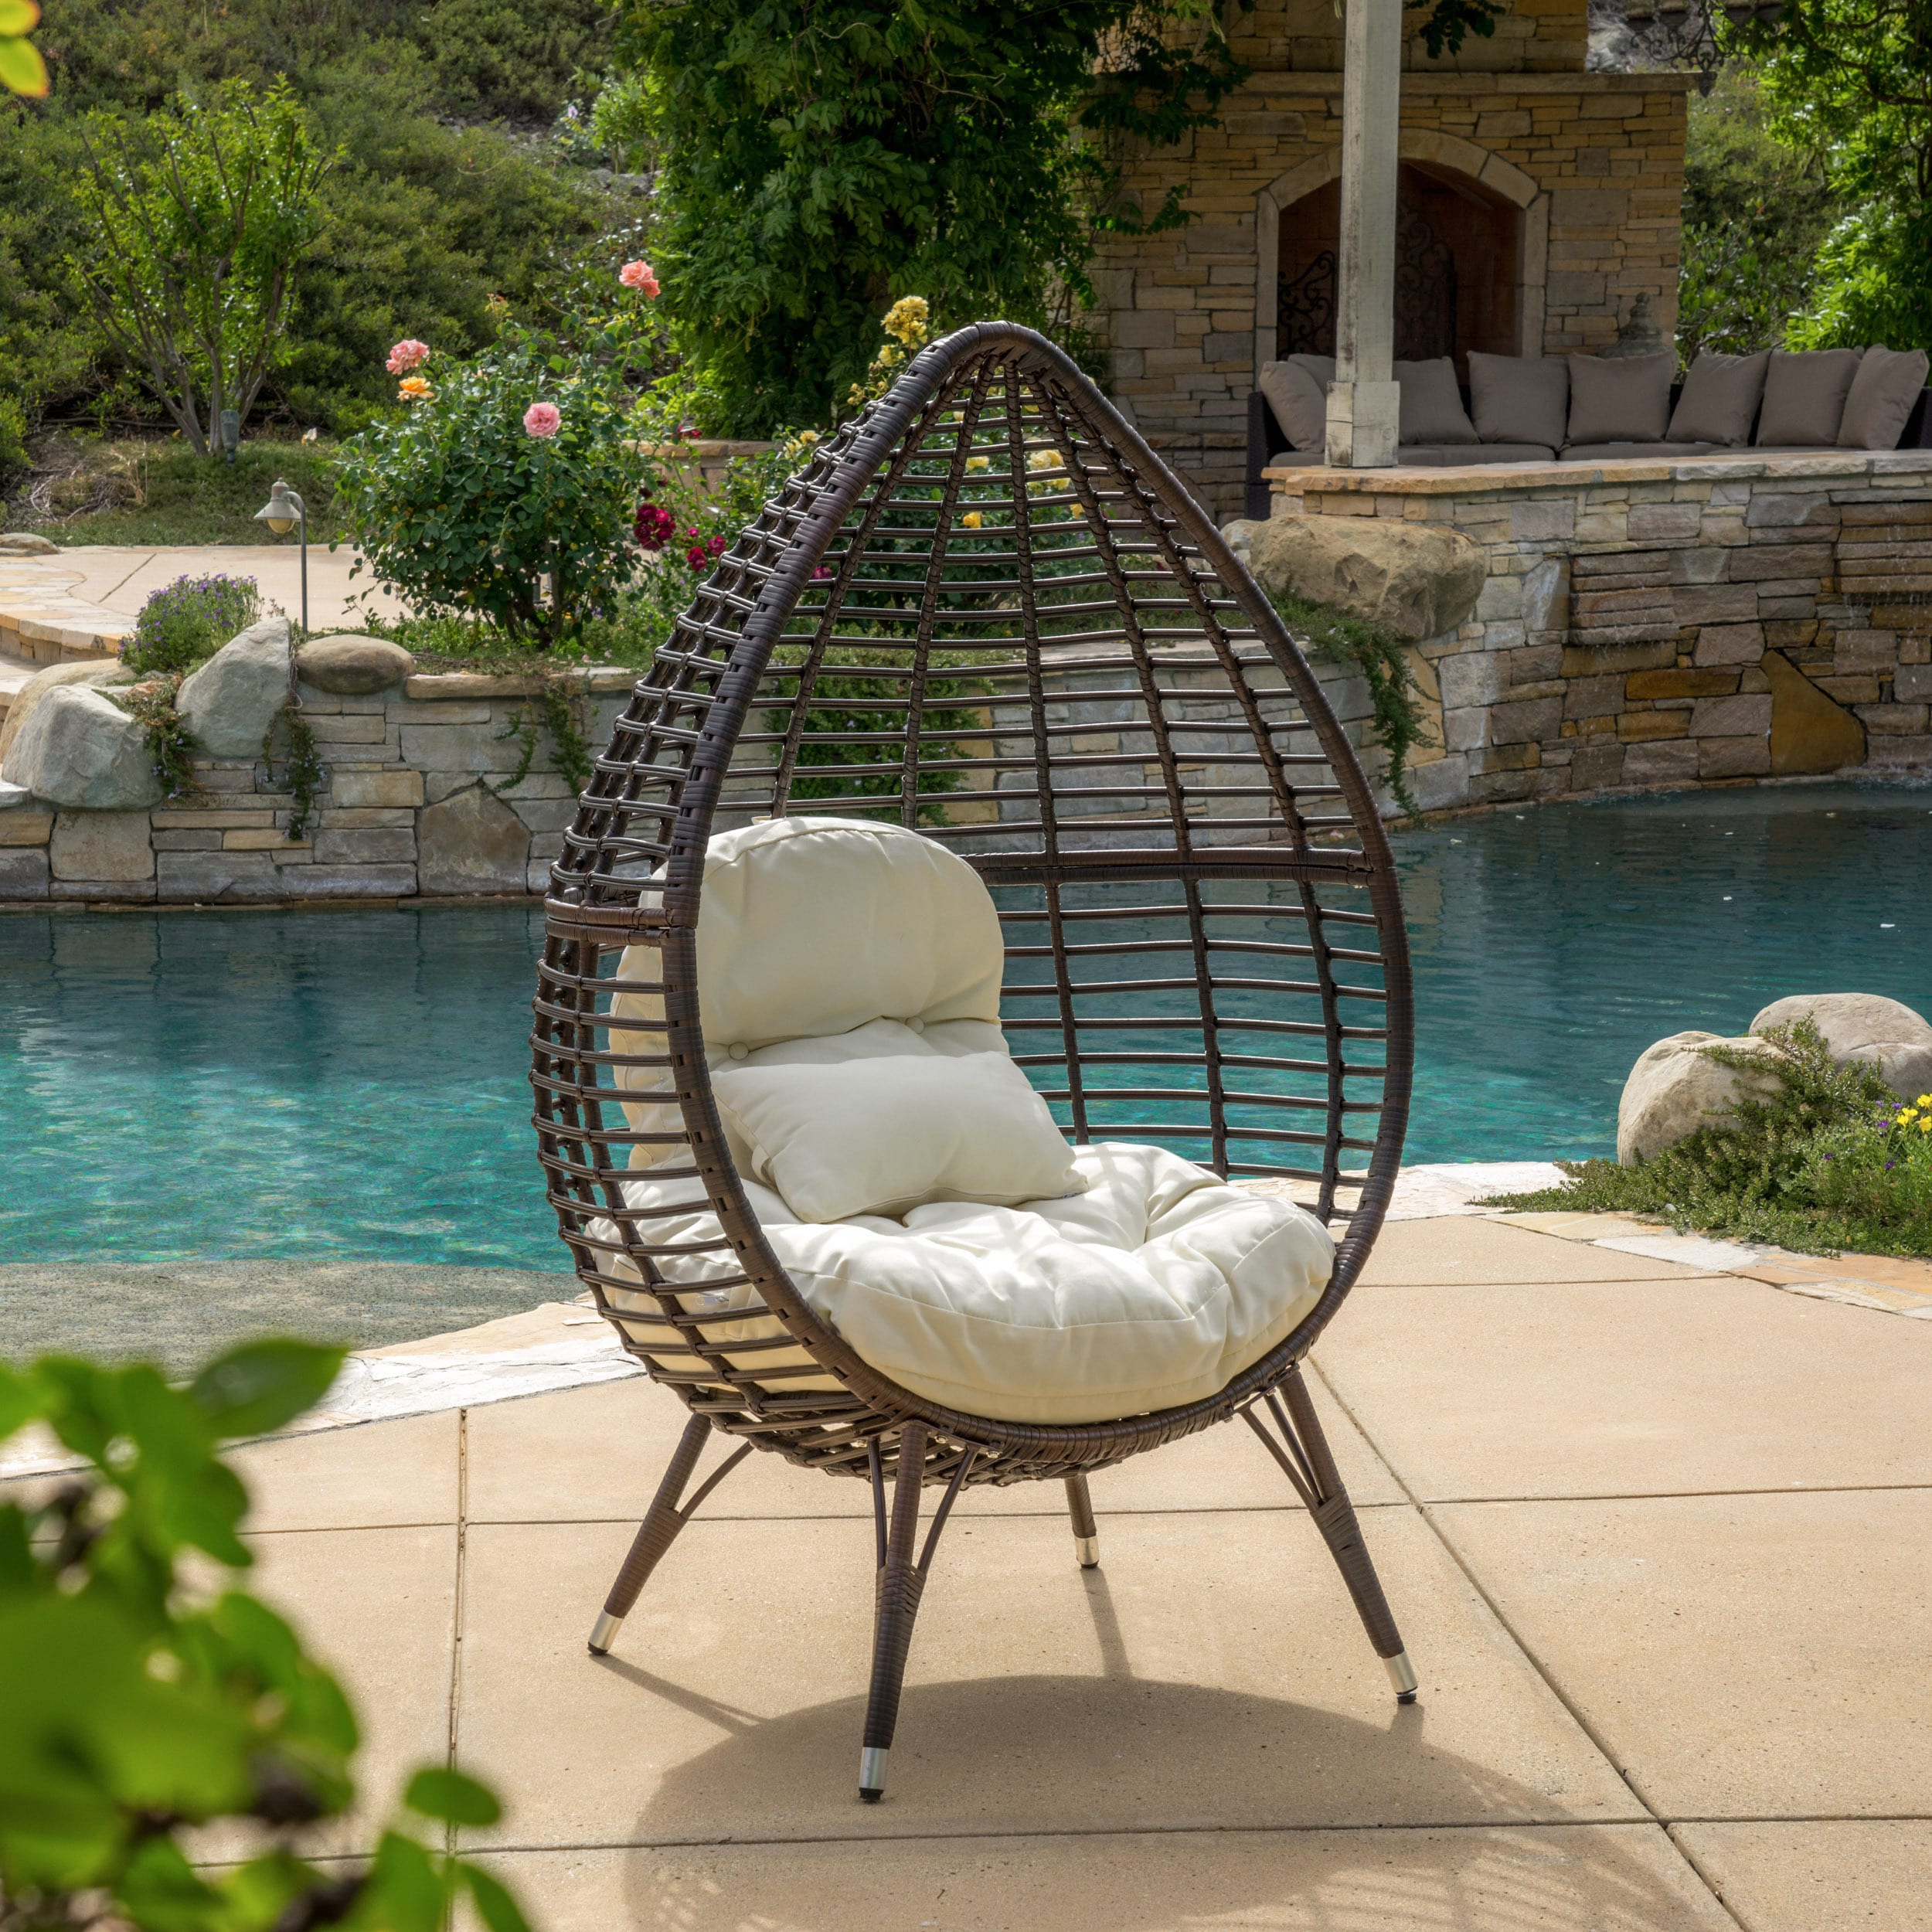 Cutter Teardrop Wicker Lounge Chair With Cushion By Christopher Knight Home    Free Shipping Today   Overstock.com   17298397